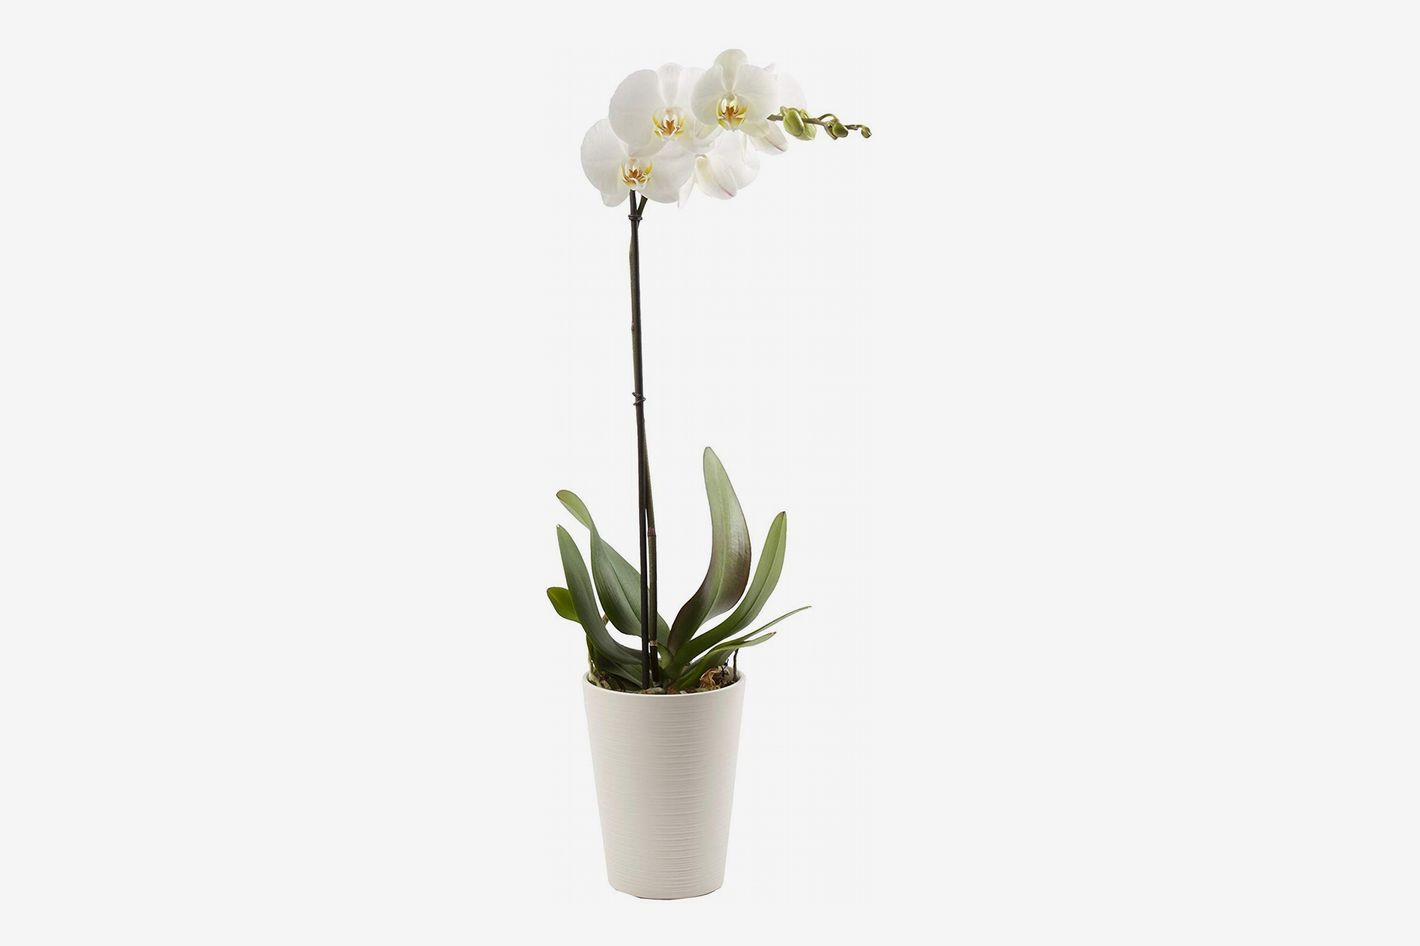 Color Orchids Live Blooming Single Stem Phalaenopsis Orchid Plant, White Blooms